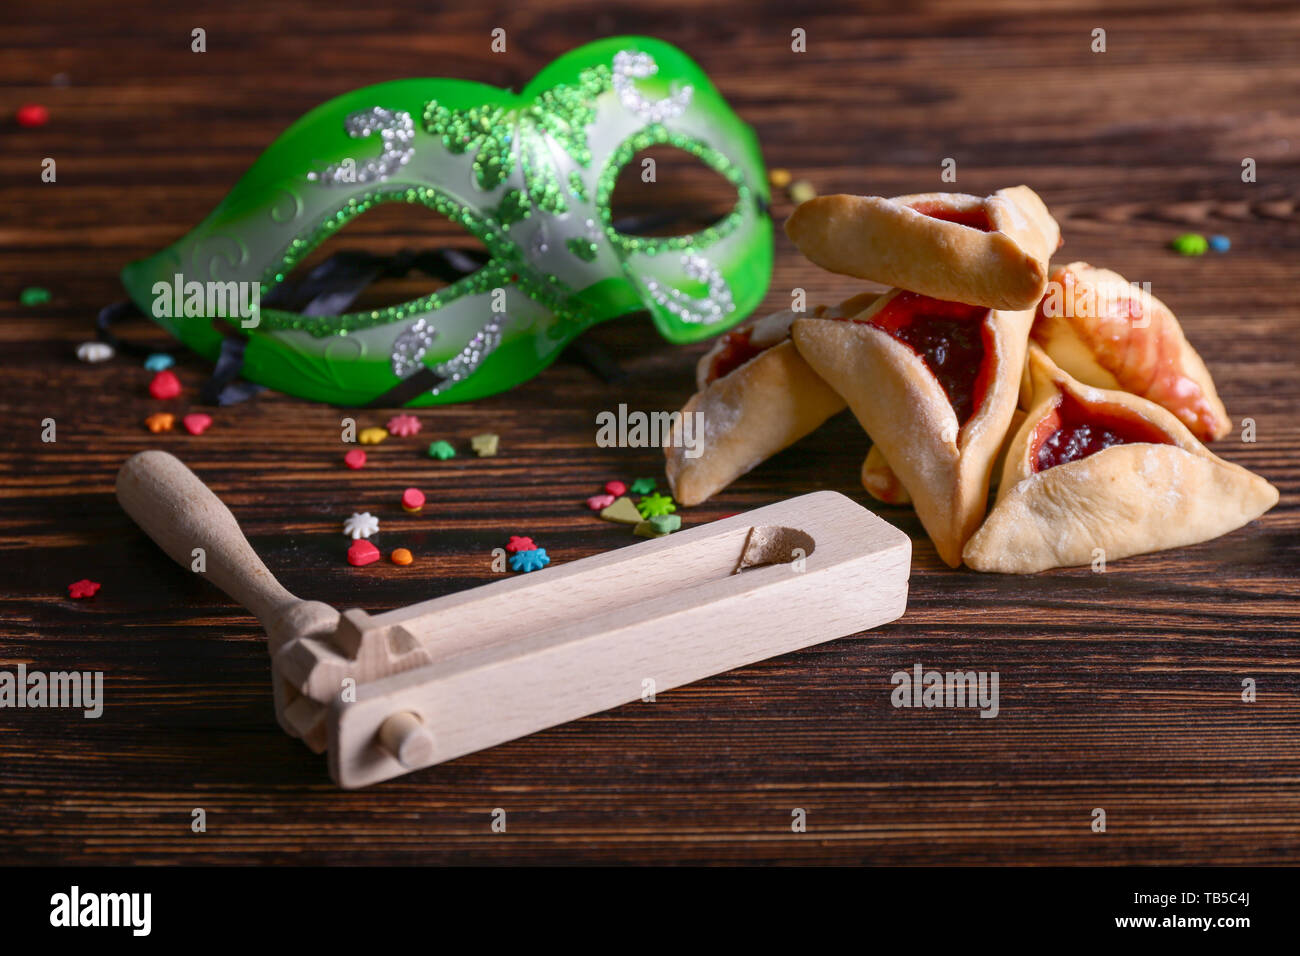 Hamantaschen, grager and mask for Purim holiday on wooden table - Stock Image